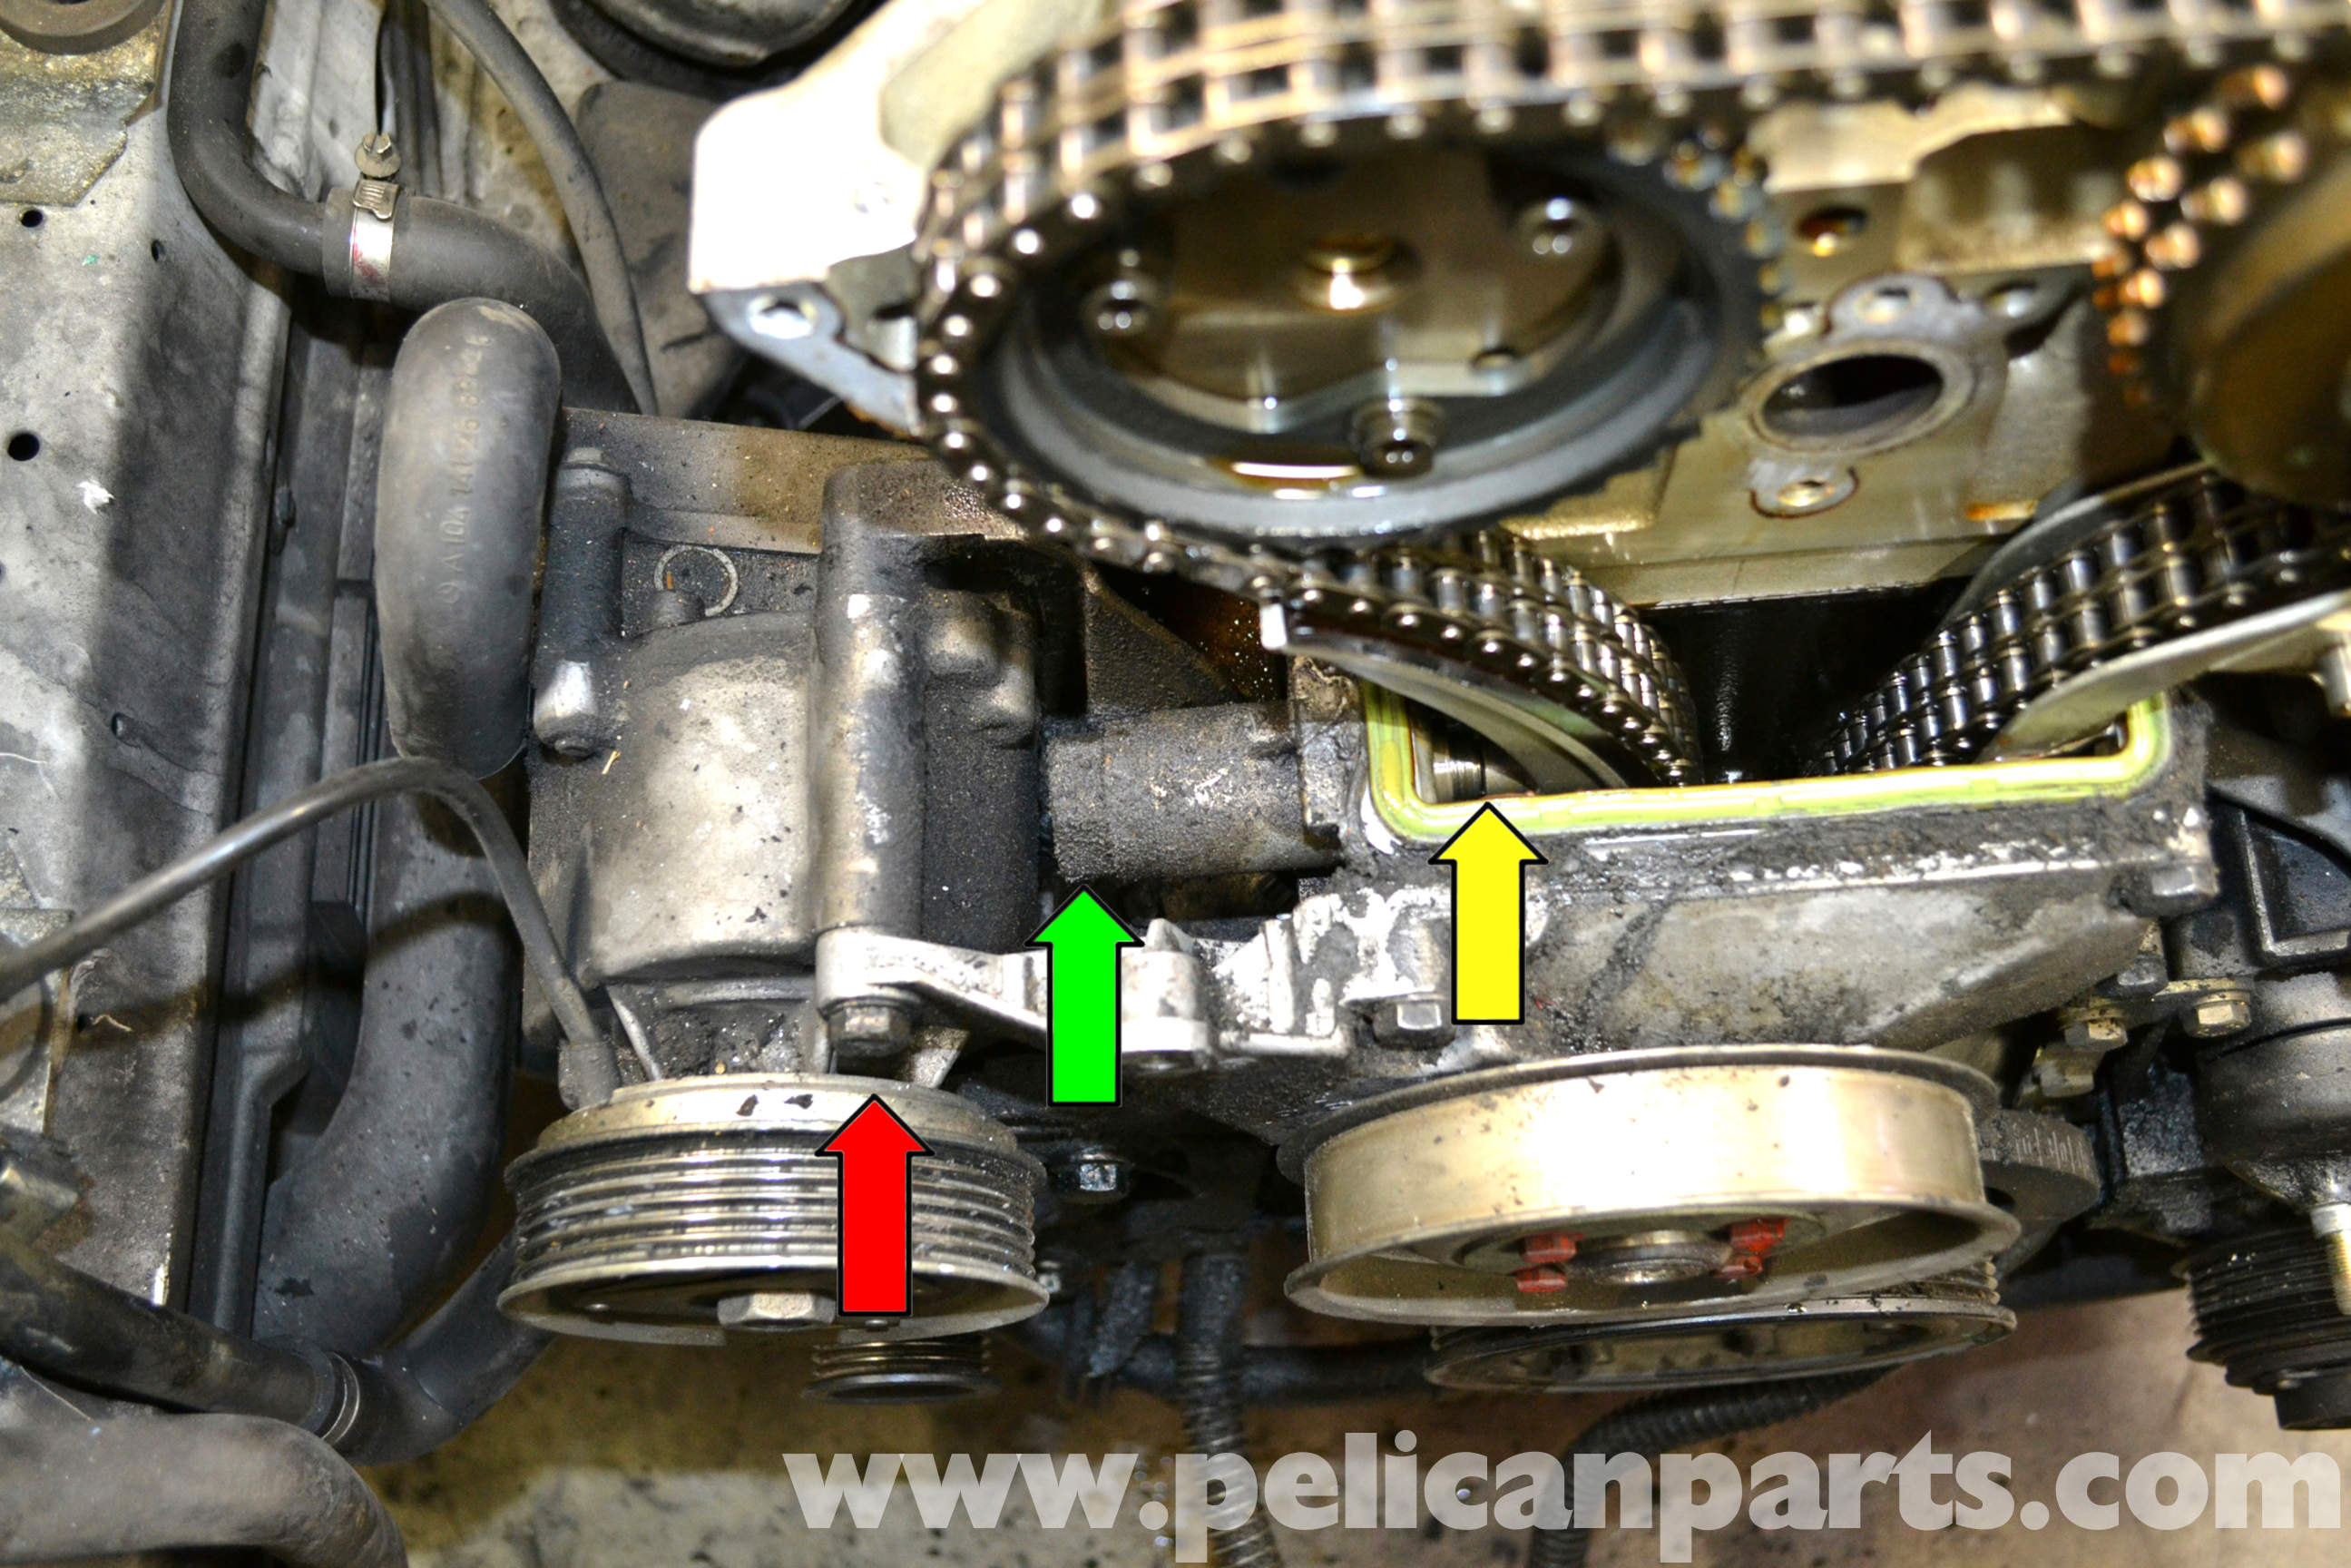 Showthread together with Mercedes E320 Crankshaft Position Sensor Location 530aa64aa4e96dfe furthermore 2005 Saab 9 3 Engine Diagram in addition 28 TRANS Automatic Transmission Fluid Change further 51 ENGINE Timing Chain Tensioner Replacement. on saab engine oil pump diagram